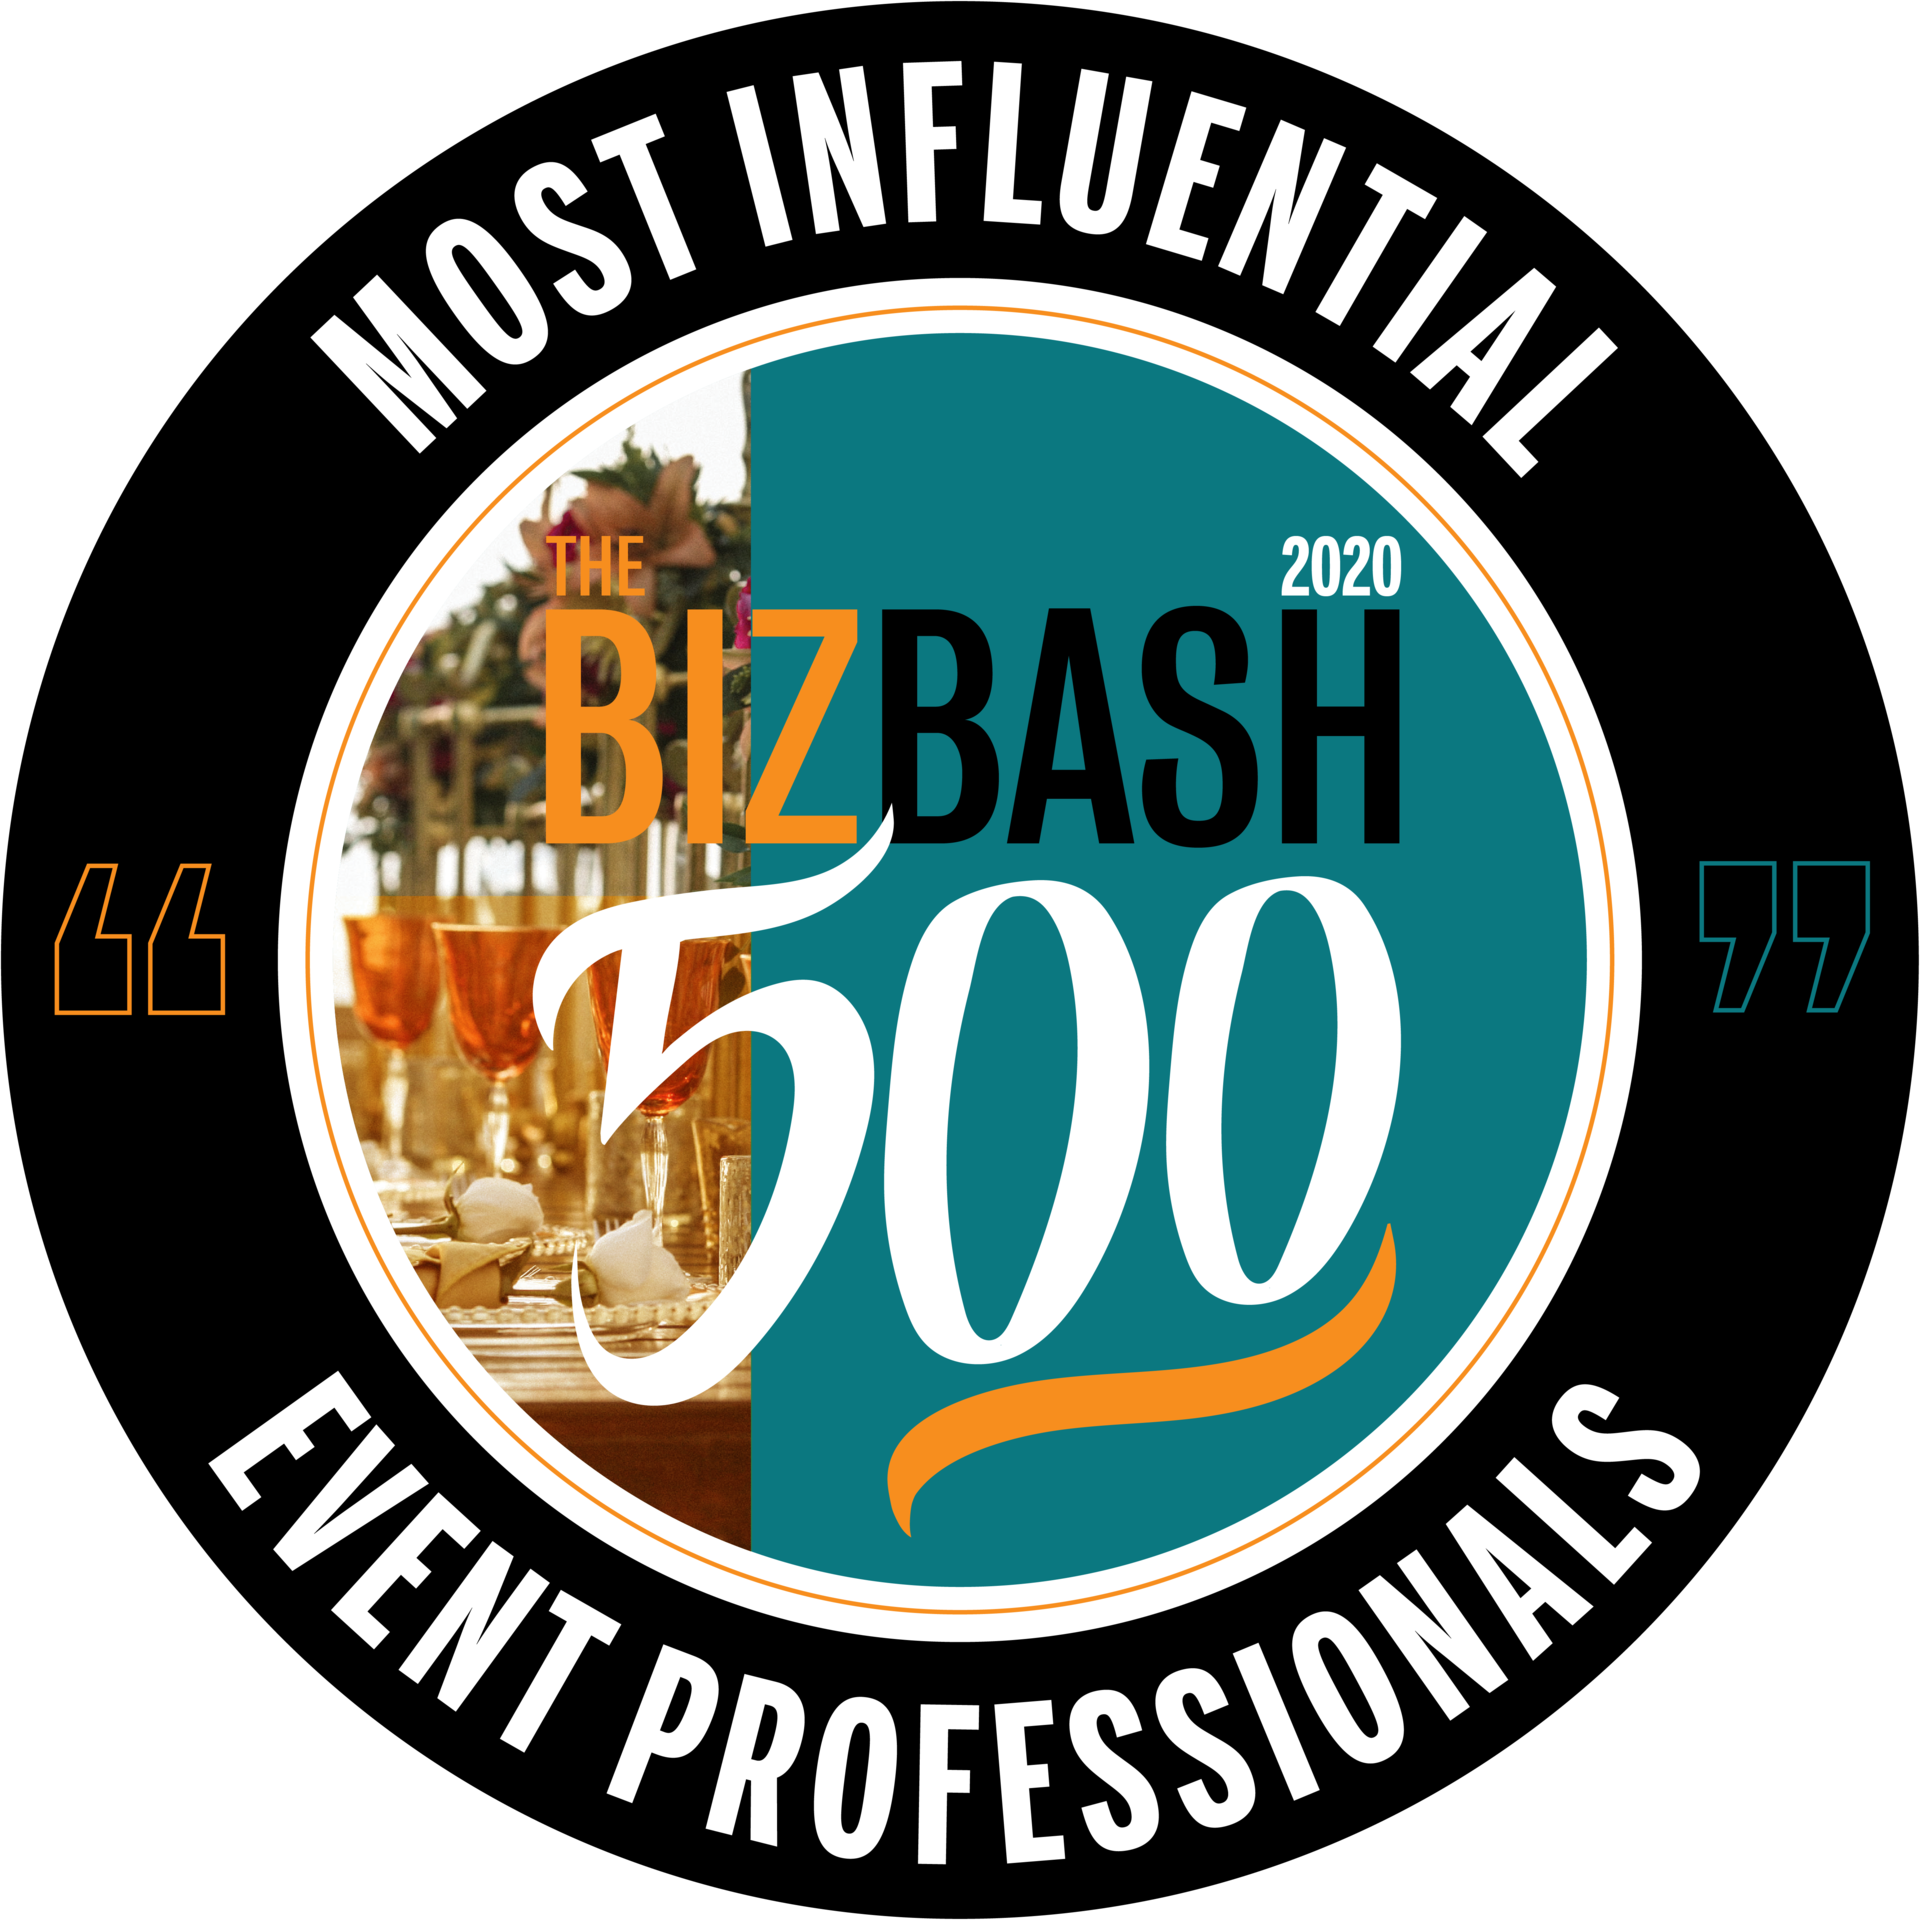 BizBash 500 Most Influential 2020